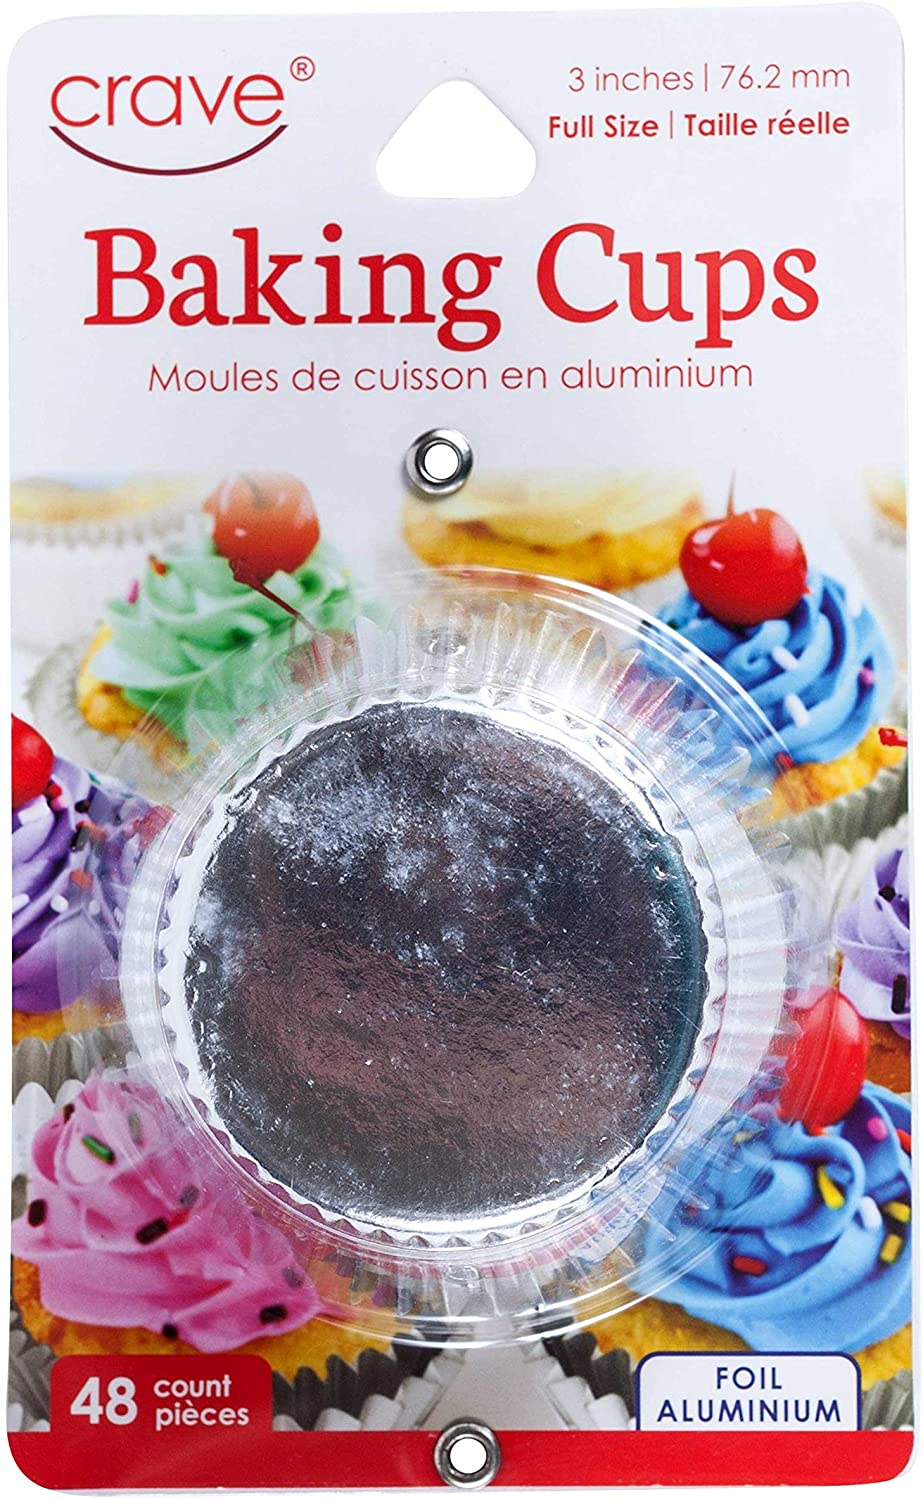 Jacent Crave 3 Inch Full Size Foil Baking Cups, 75 Count per Pack - 3 Pack